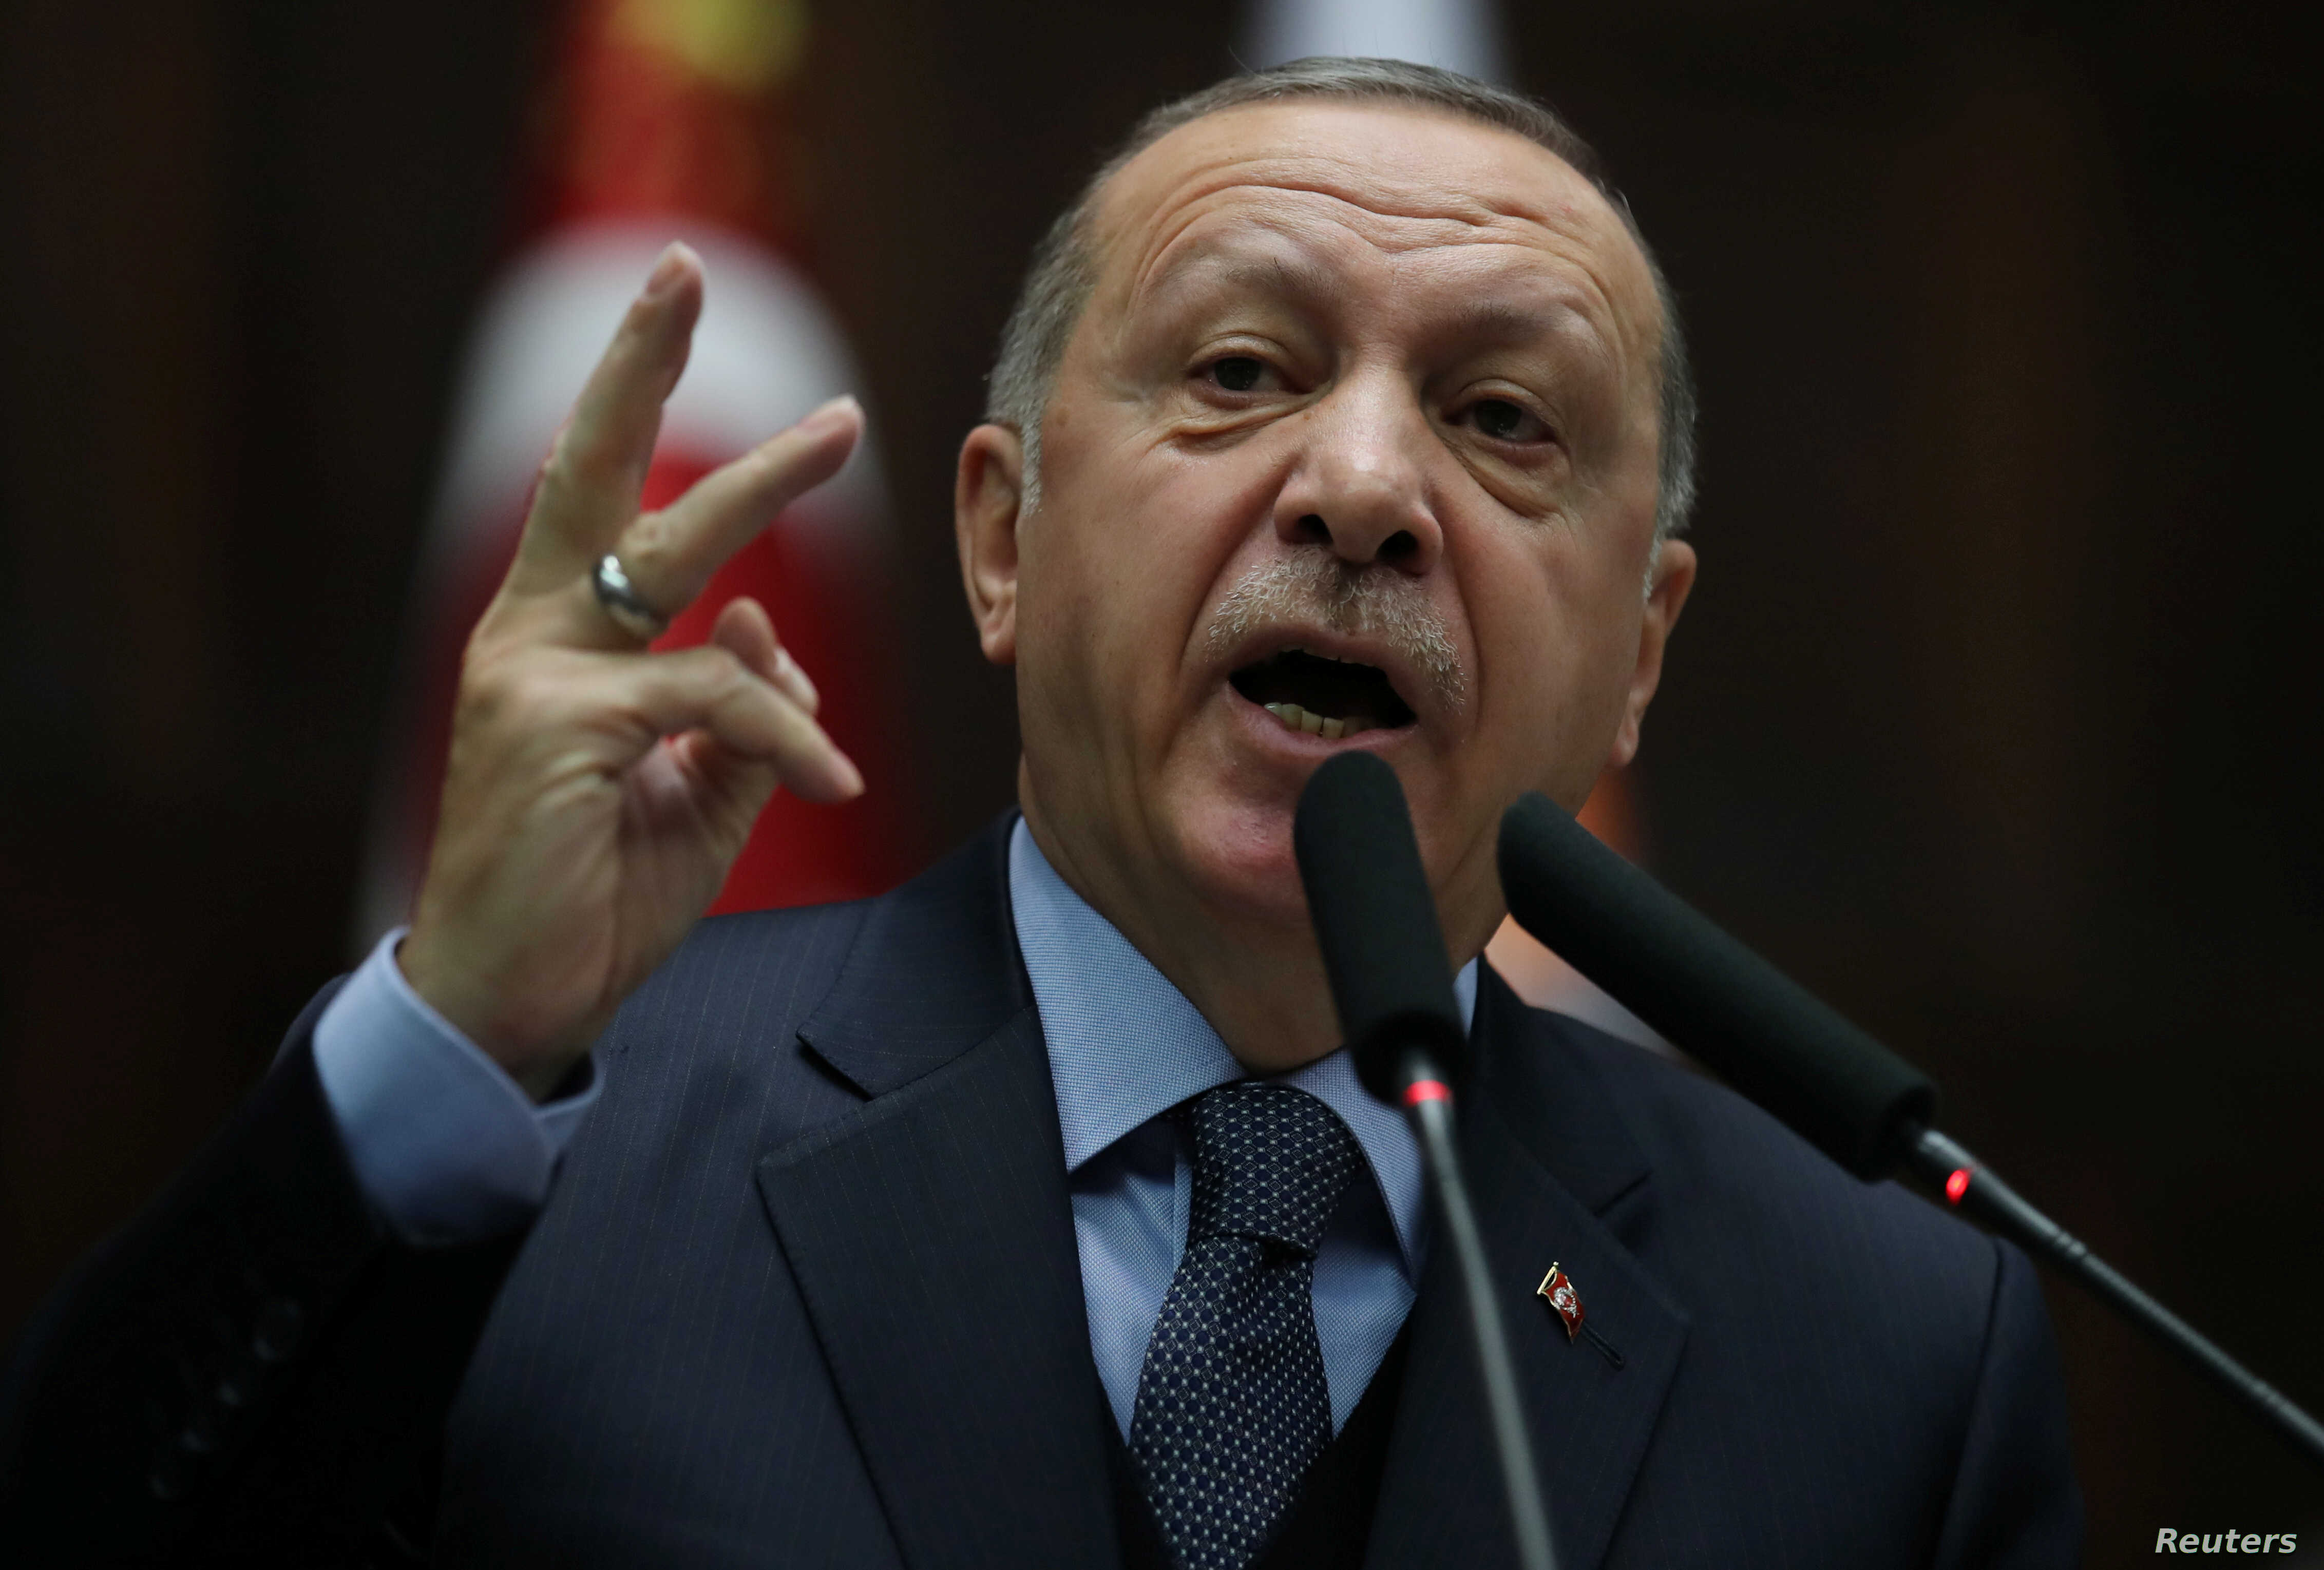 Turkish President Tayyip Erdogan addresses members of parliament from his ruling AK Party (AKP) during a meeting at the Turkish parliament in Ankara, Turkey, Jan. 8, 2019.